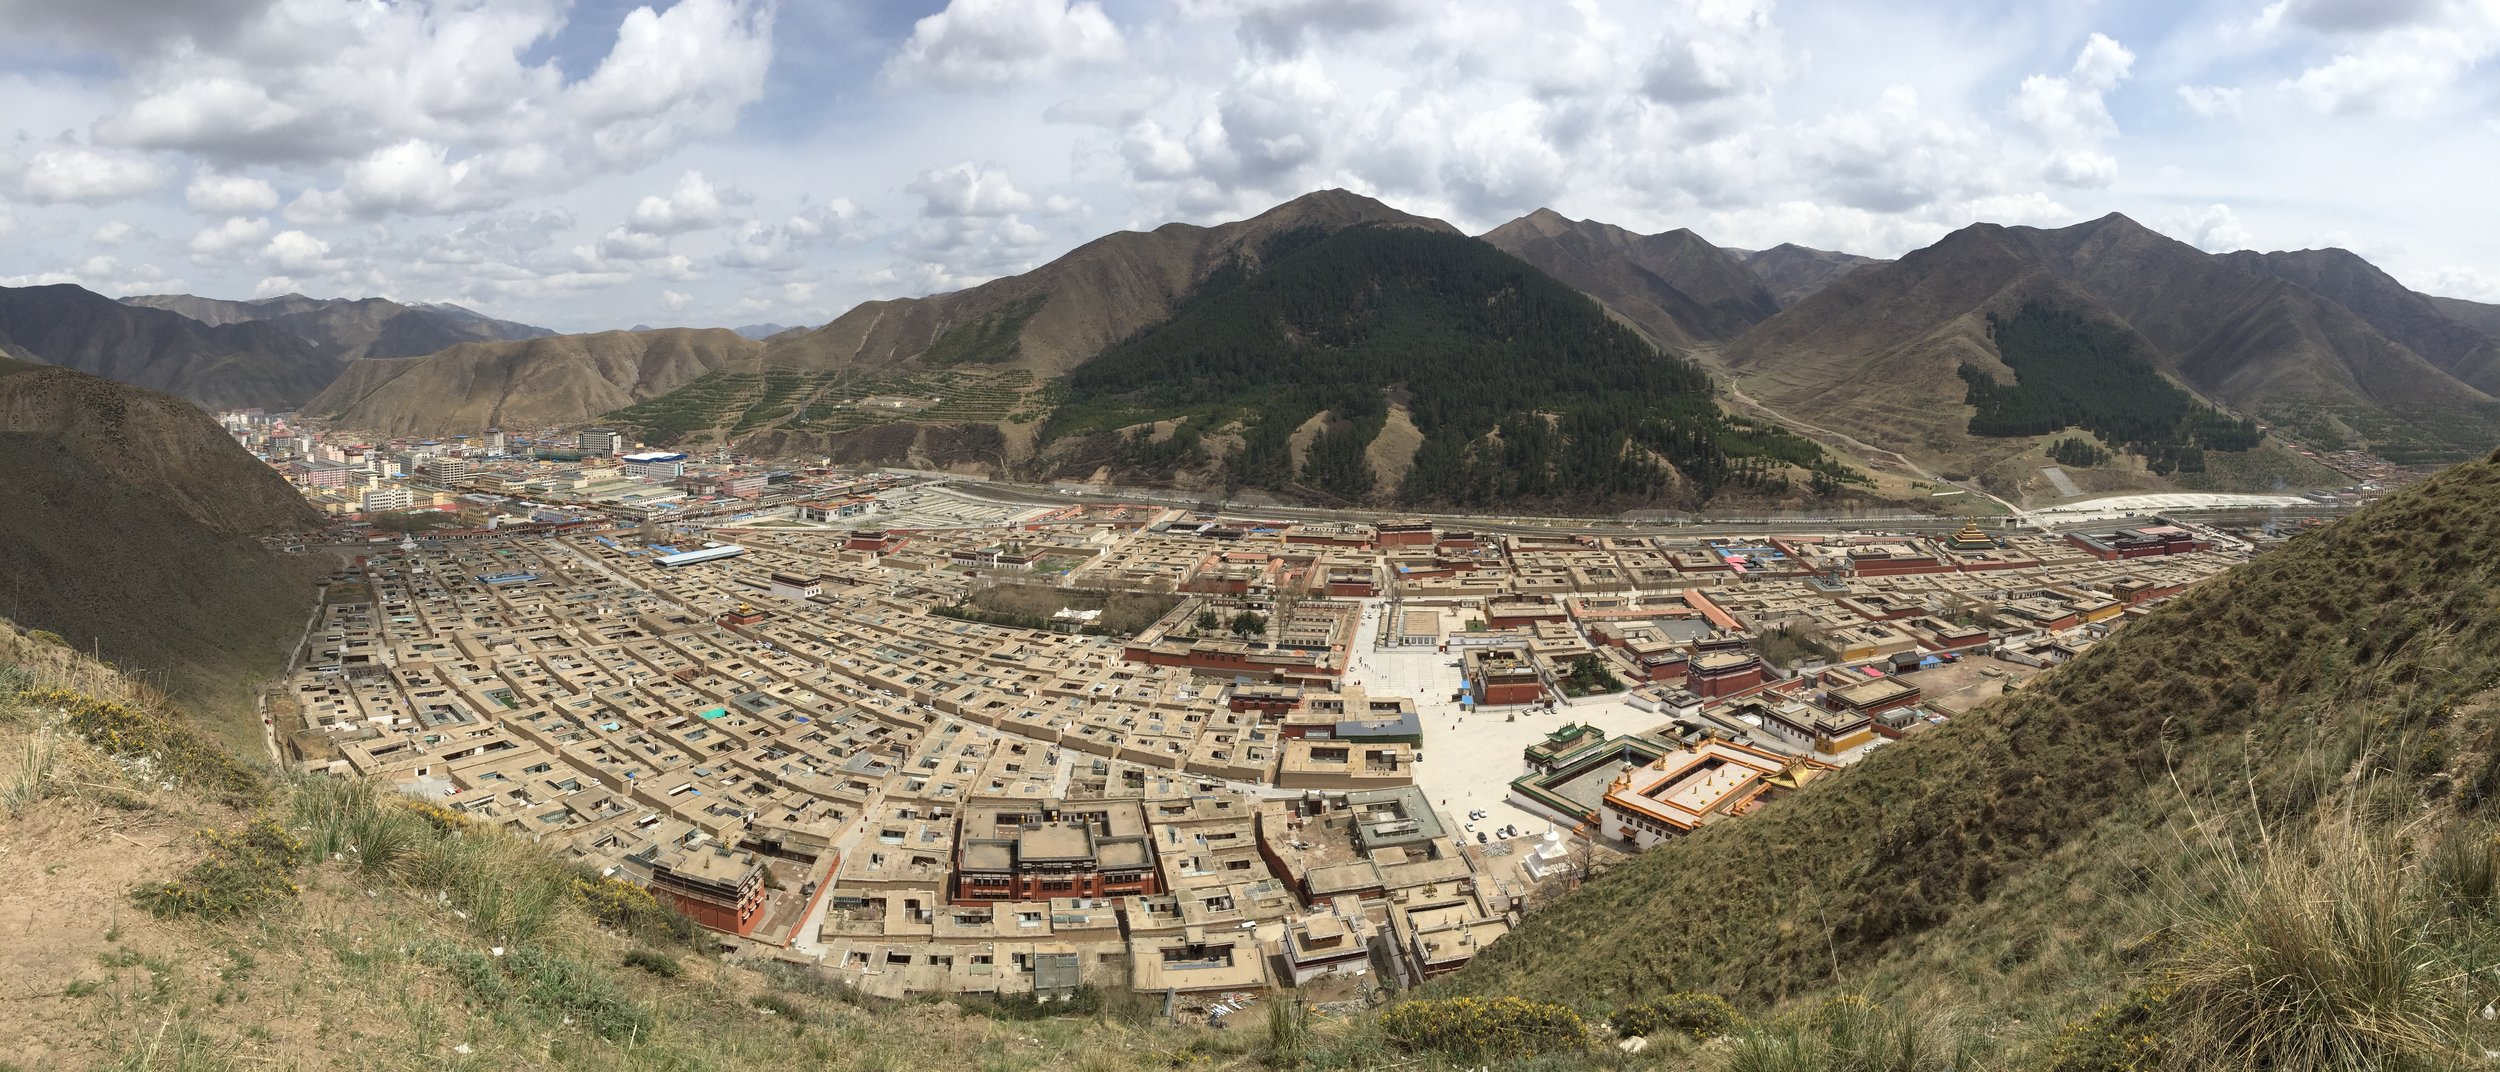 Looking down at Labrang from the outer kora.